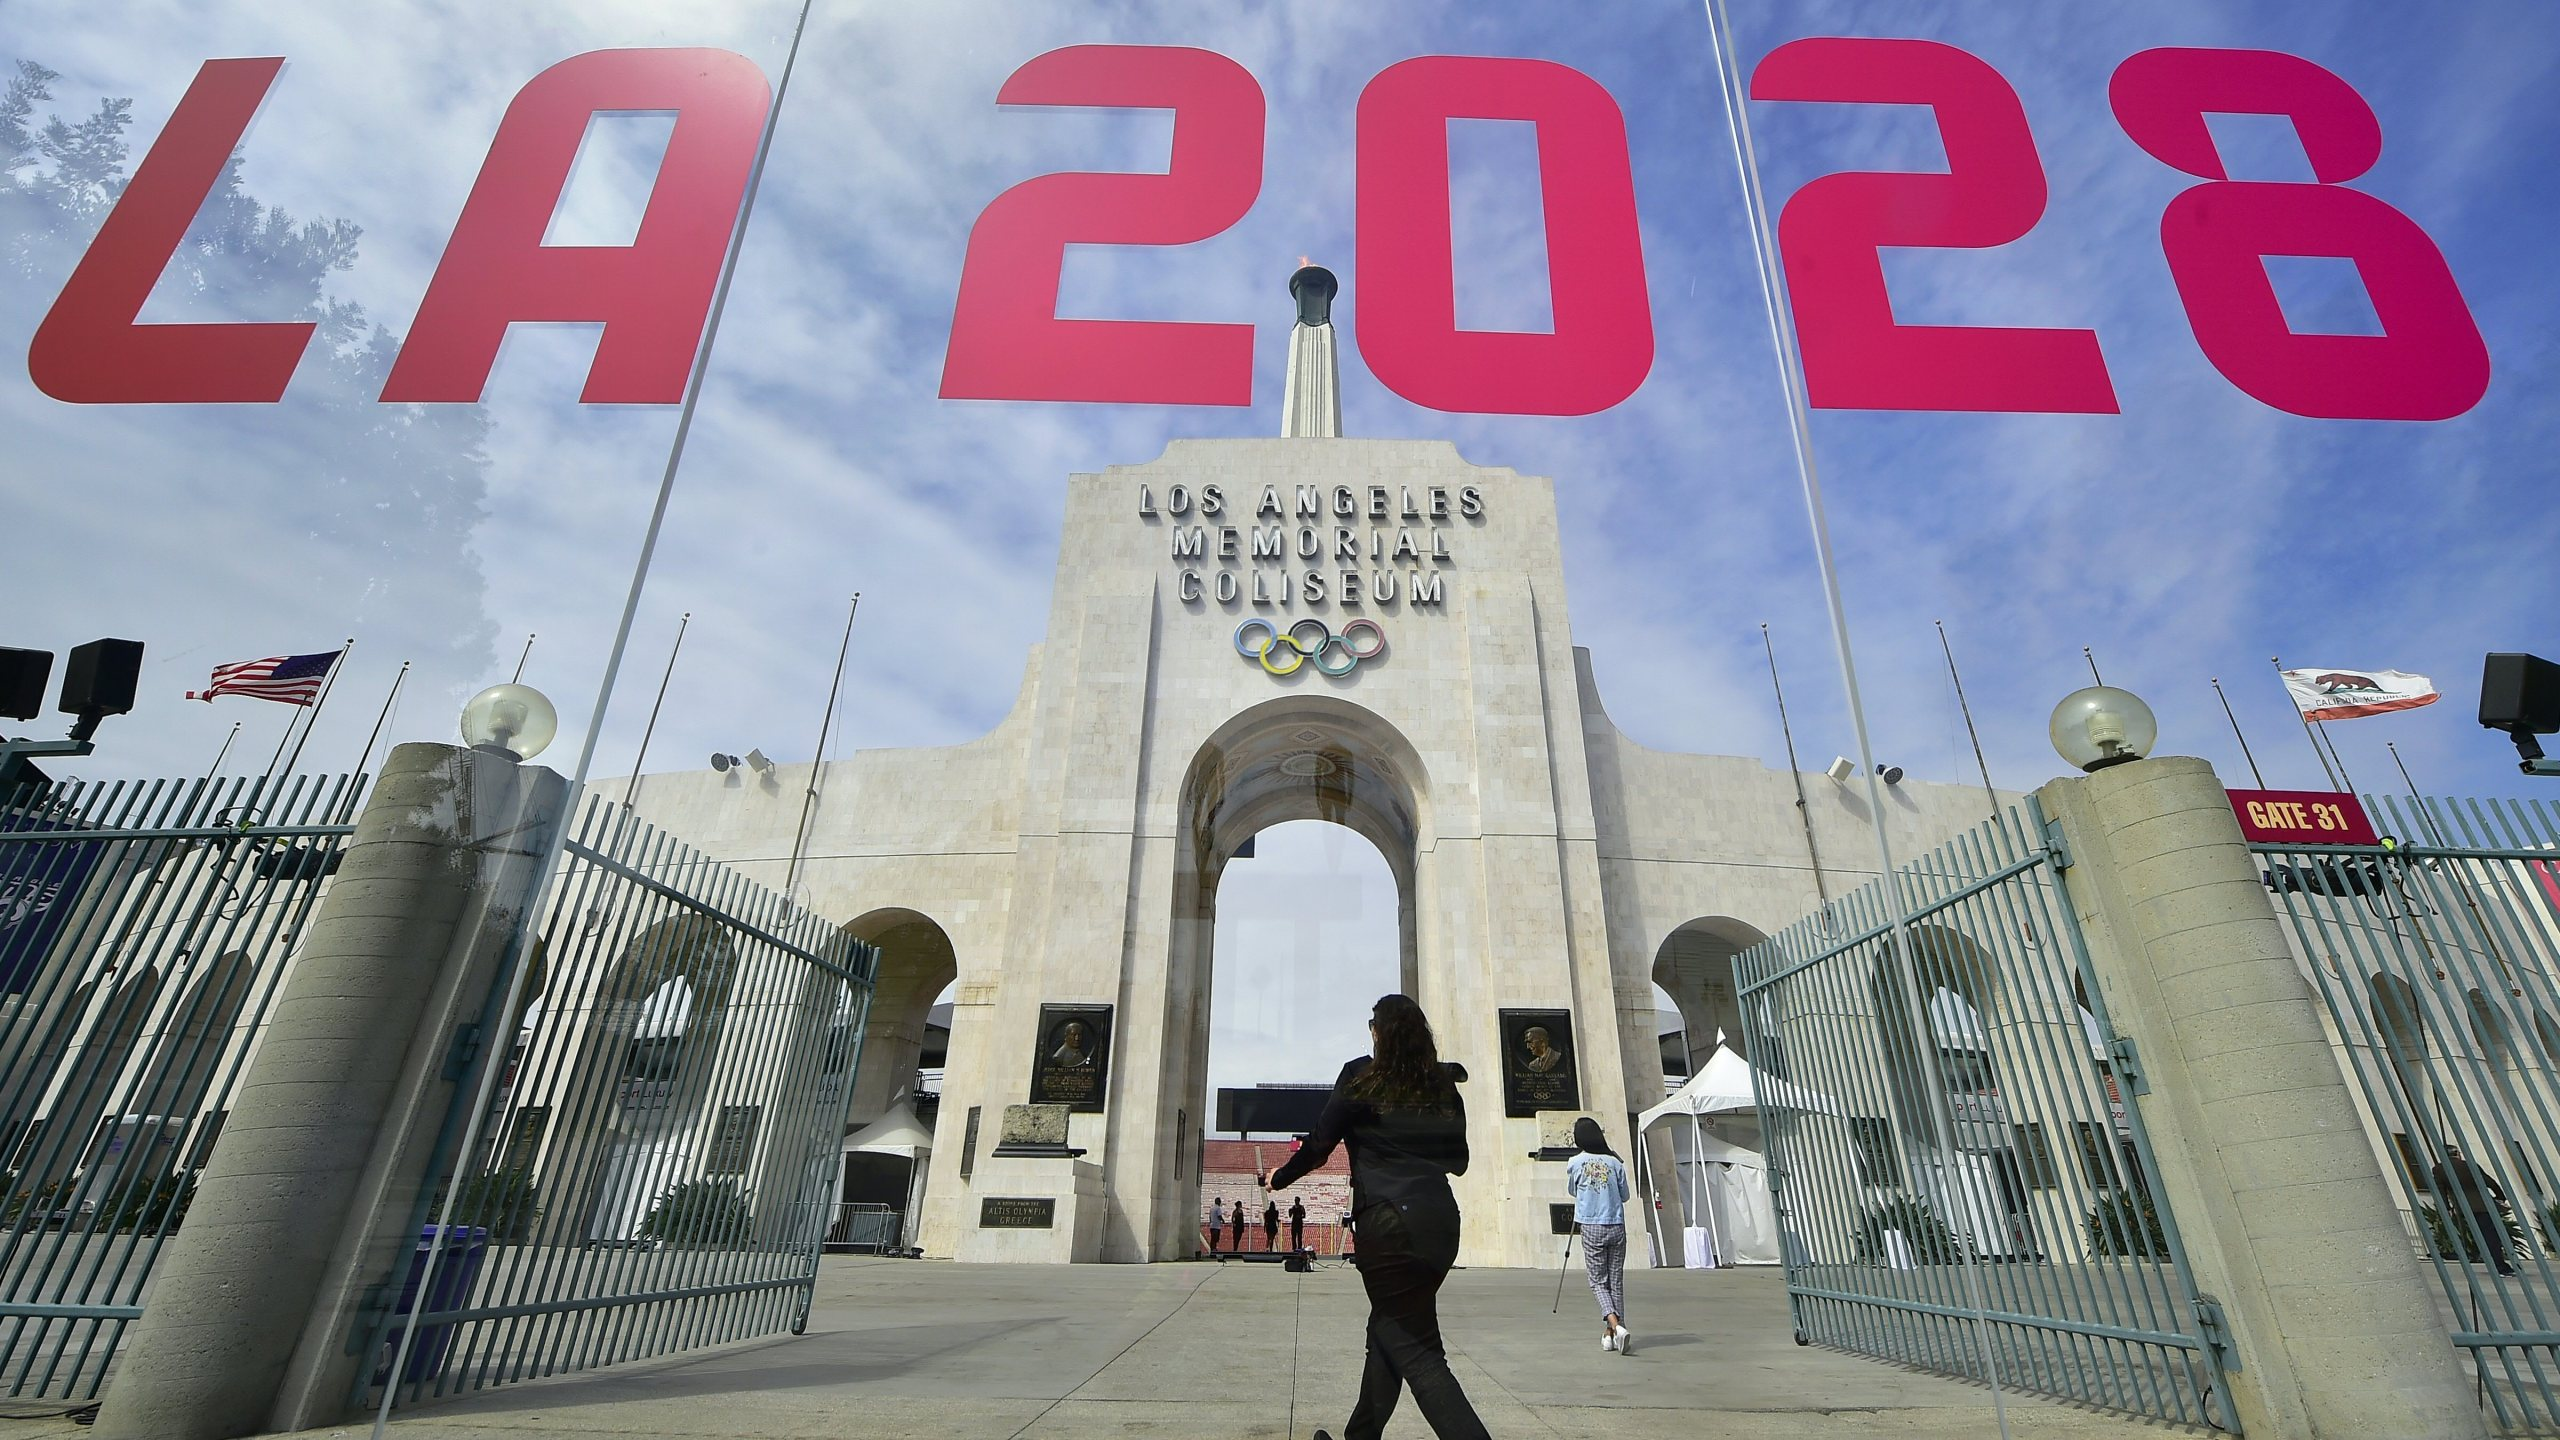 The torch is lit at the Los Angeles Coliseum on September 13, 2017. (Credit: FREDERIC J. BROWN/AFP/Getty Images)